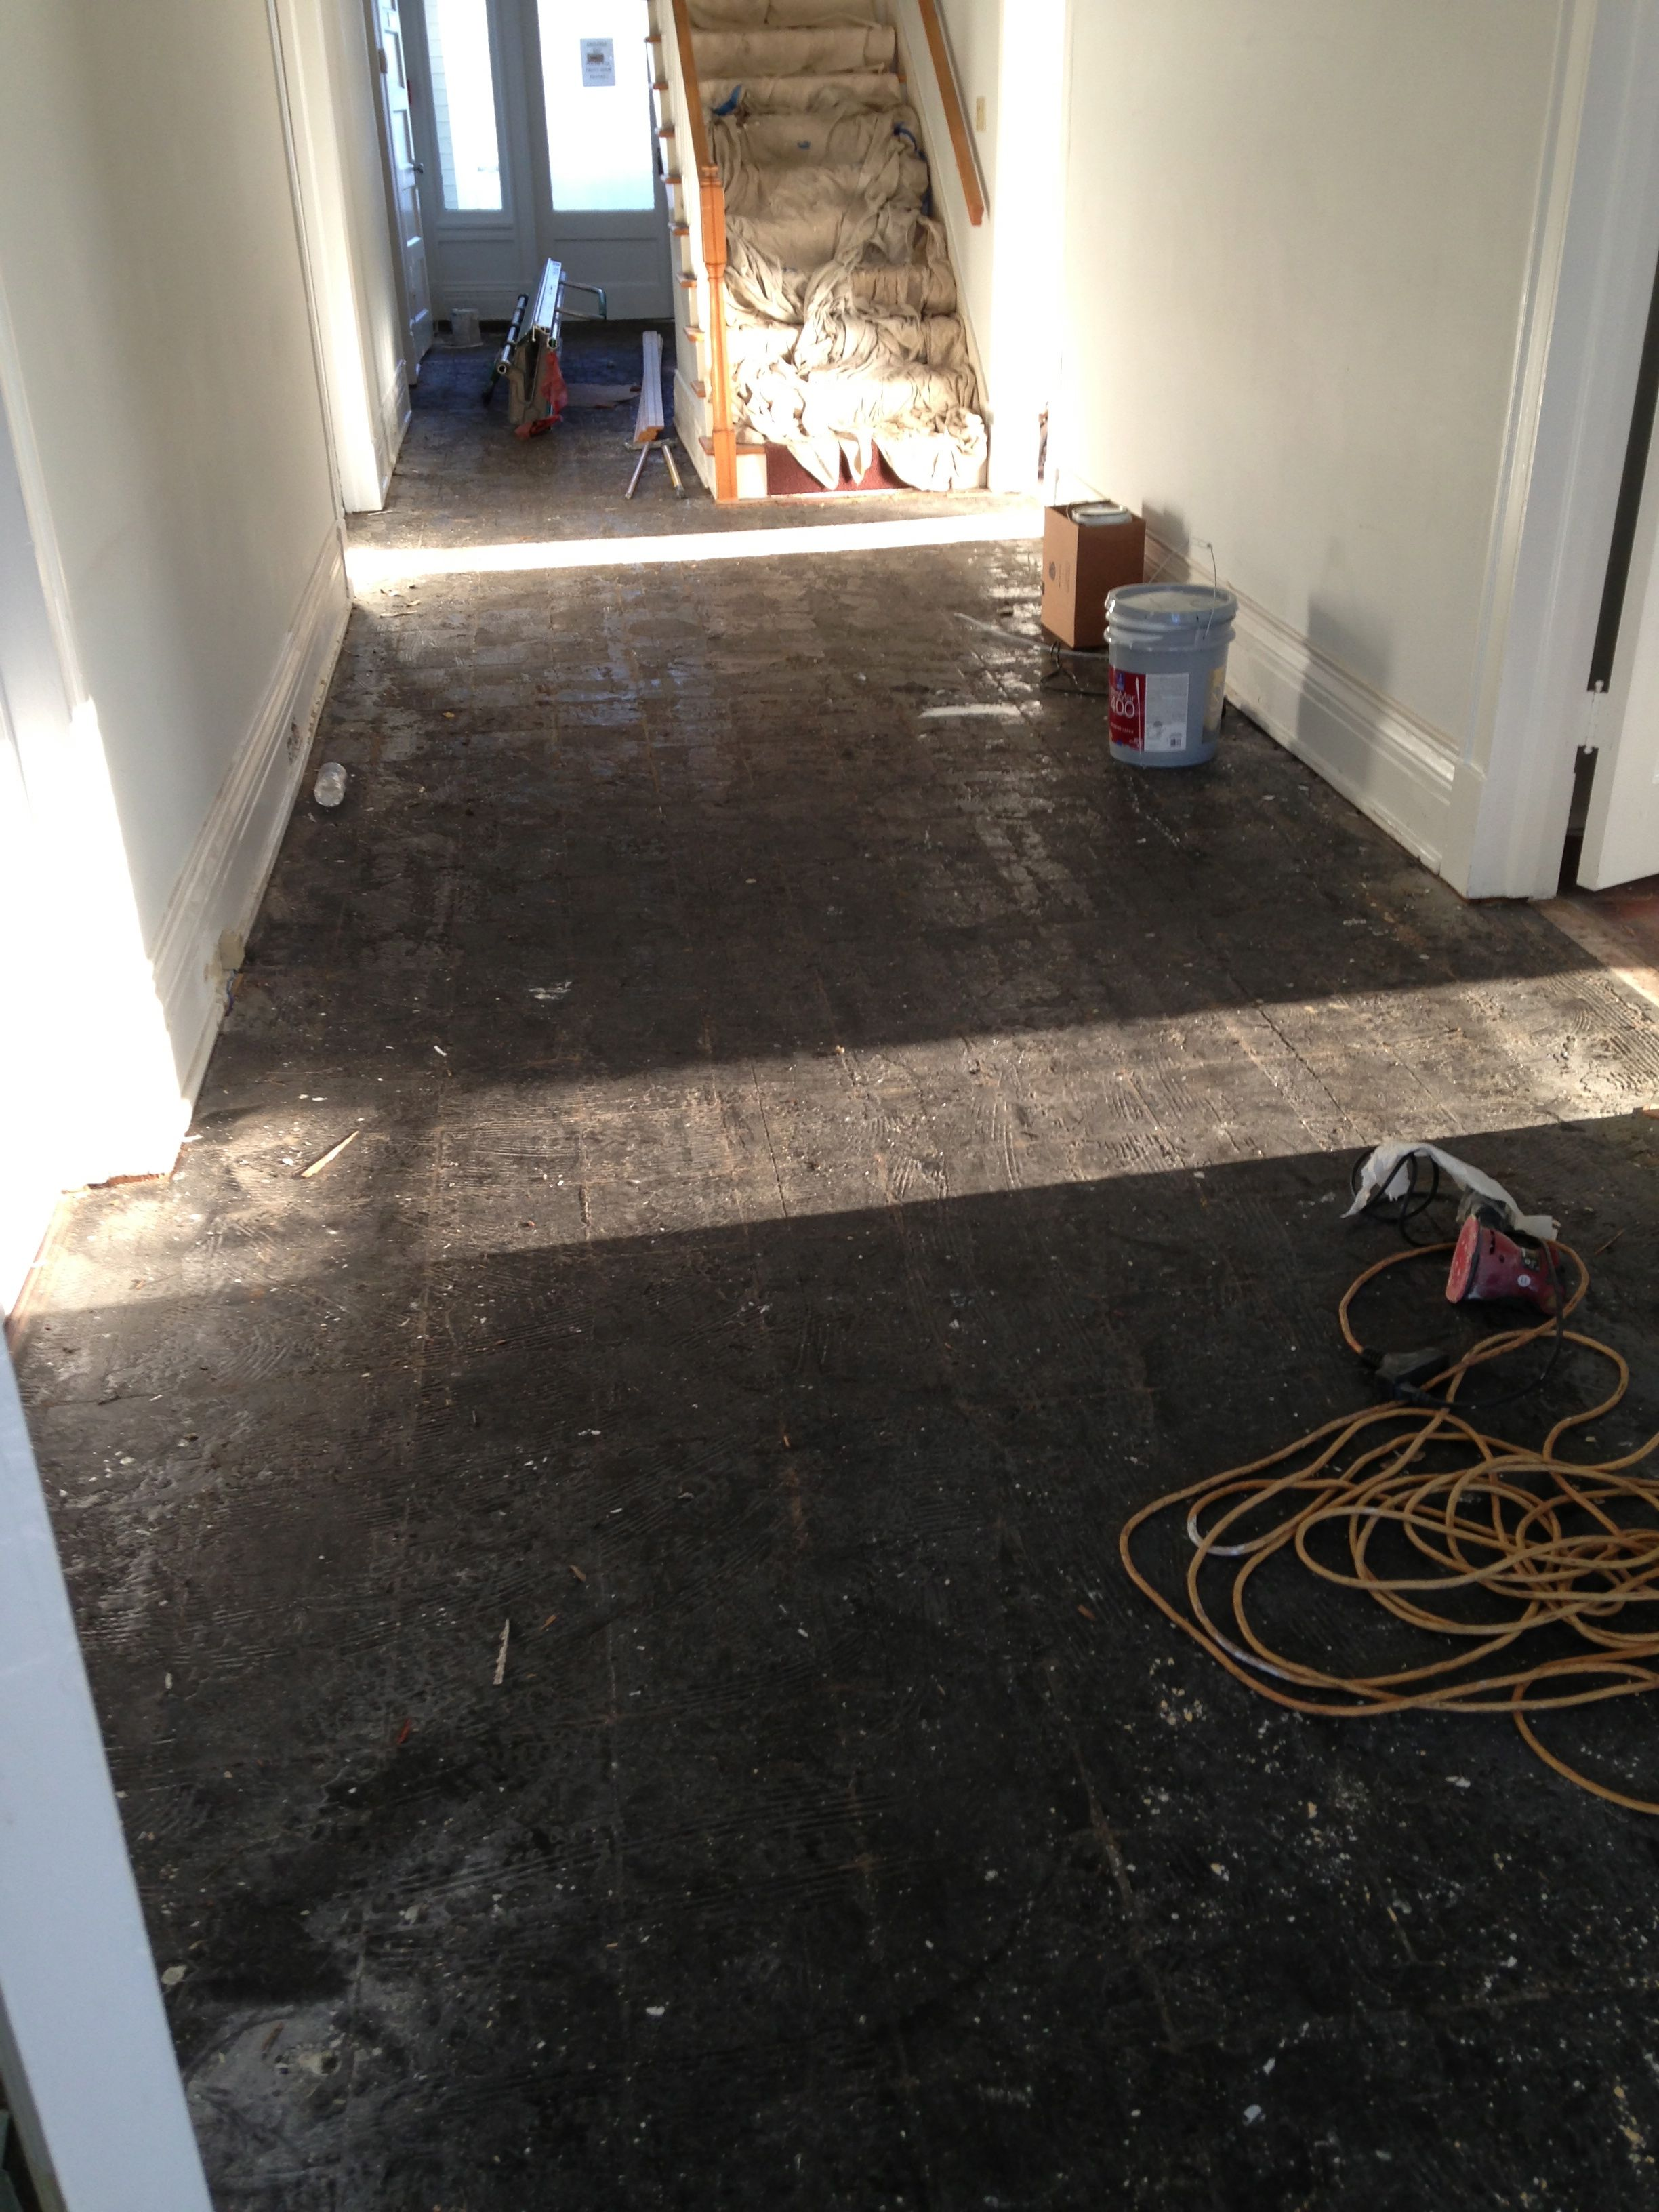 A picture of a tar covered hardwood floor after tile was removed.